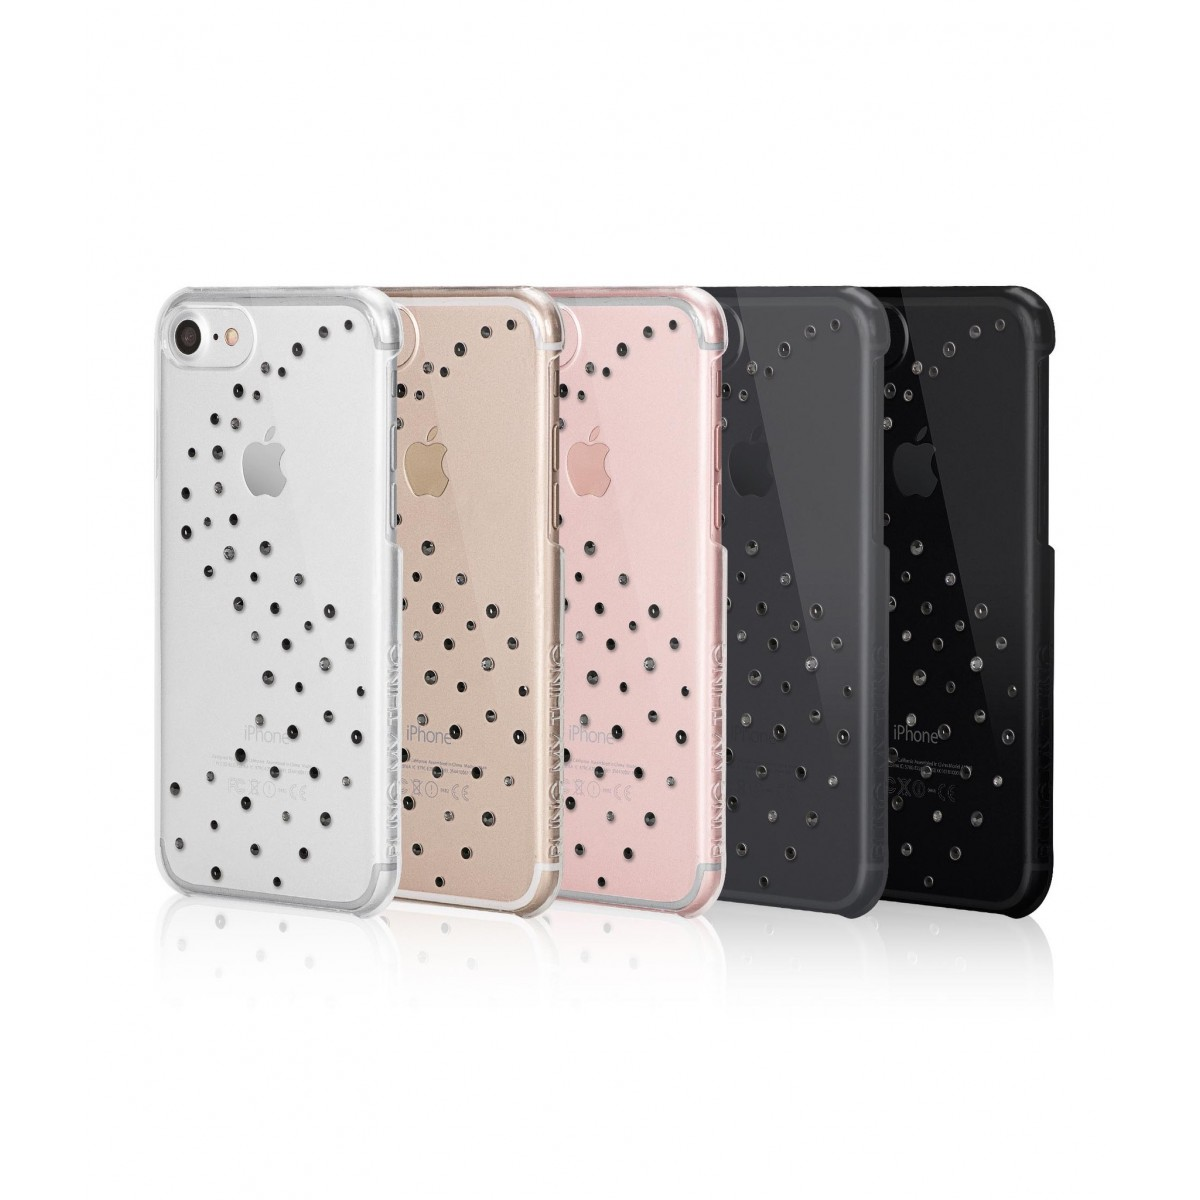 Coque iPhone 7 Milky Way Starry Night Strass Cristal et Noir Swarovski - Bling My Thing